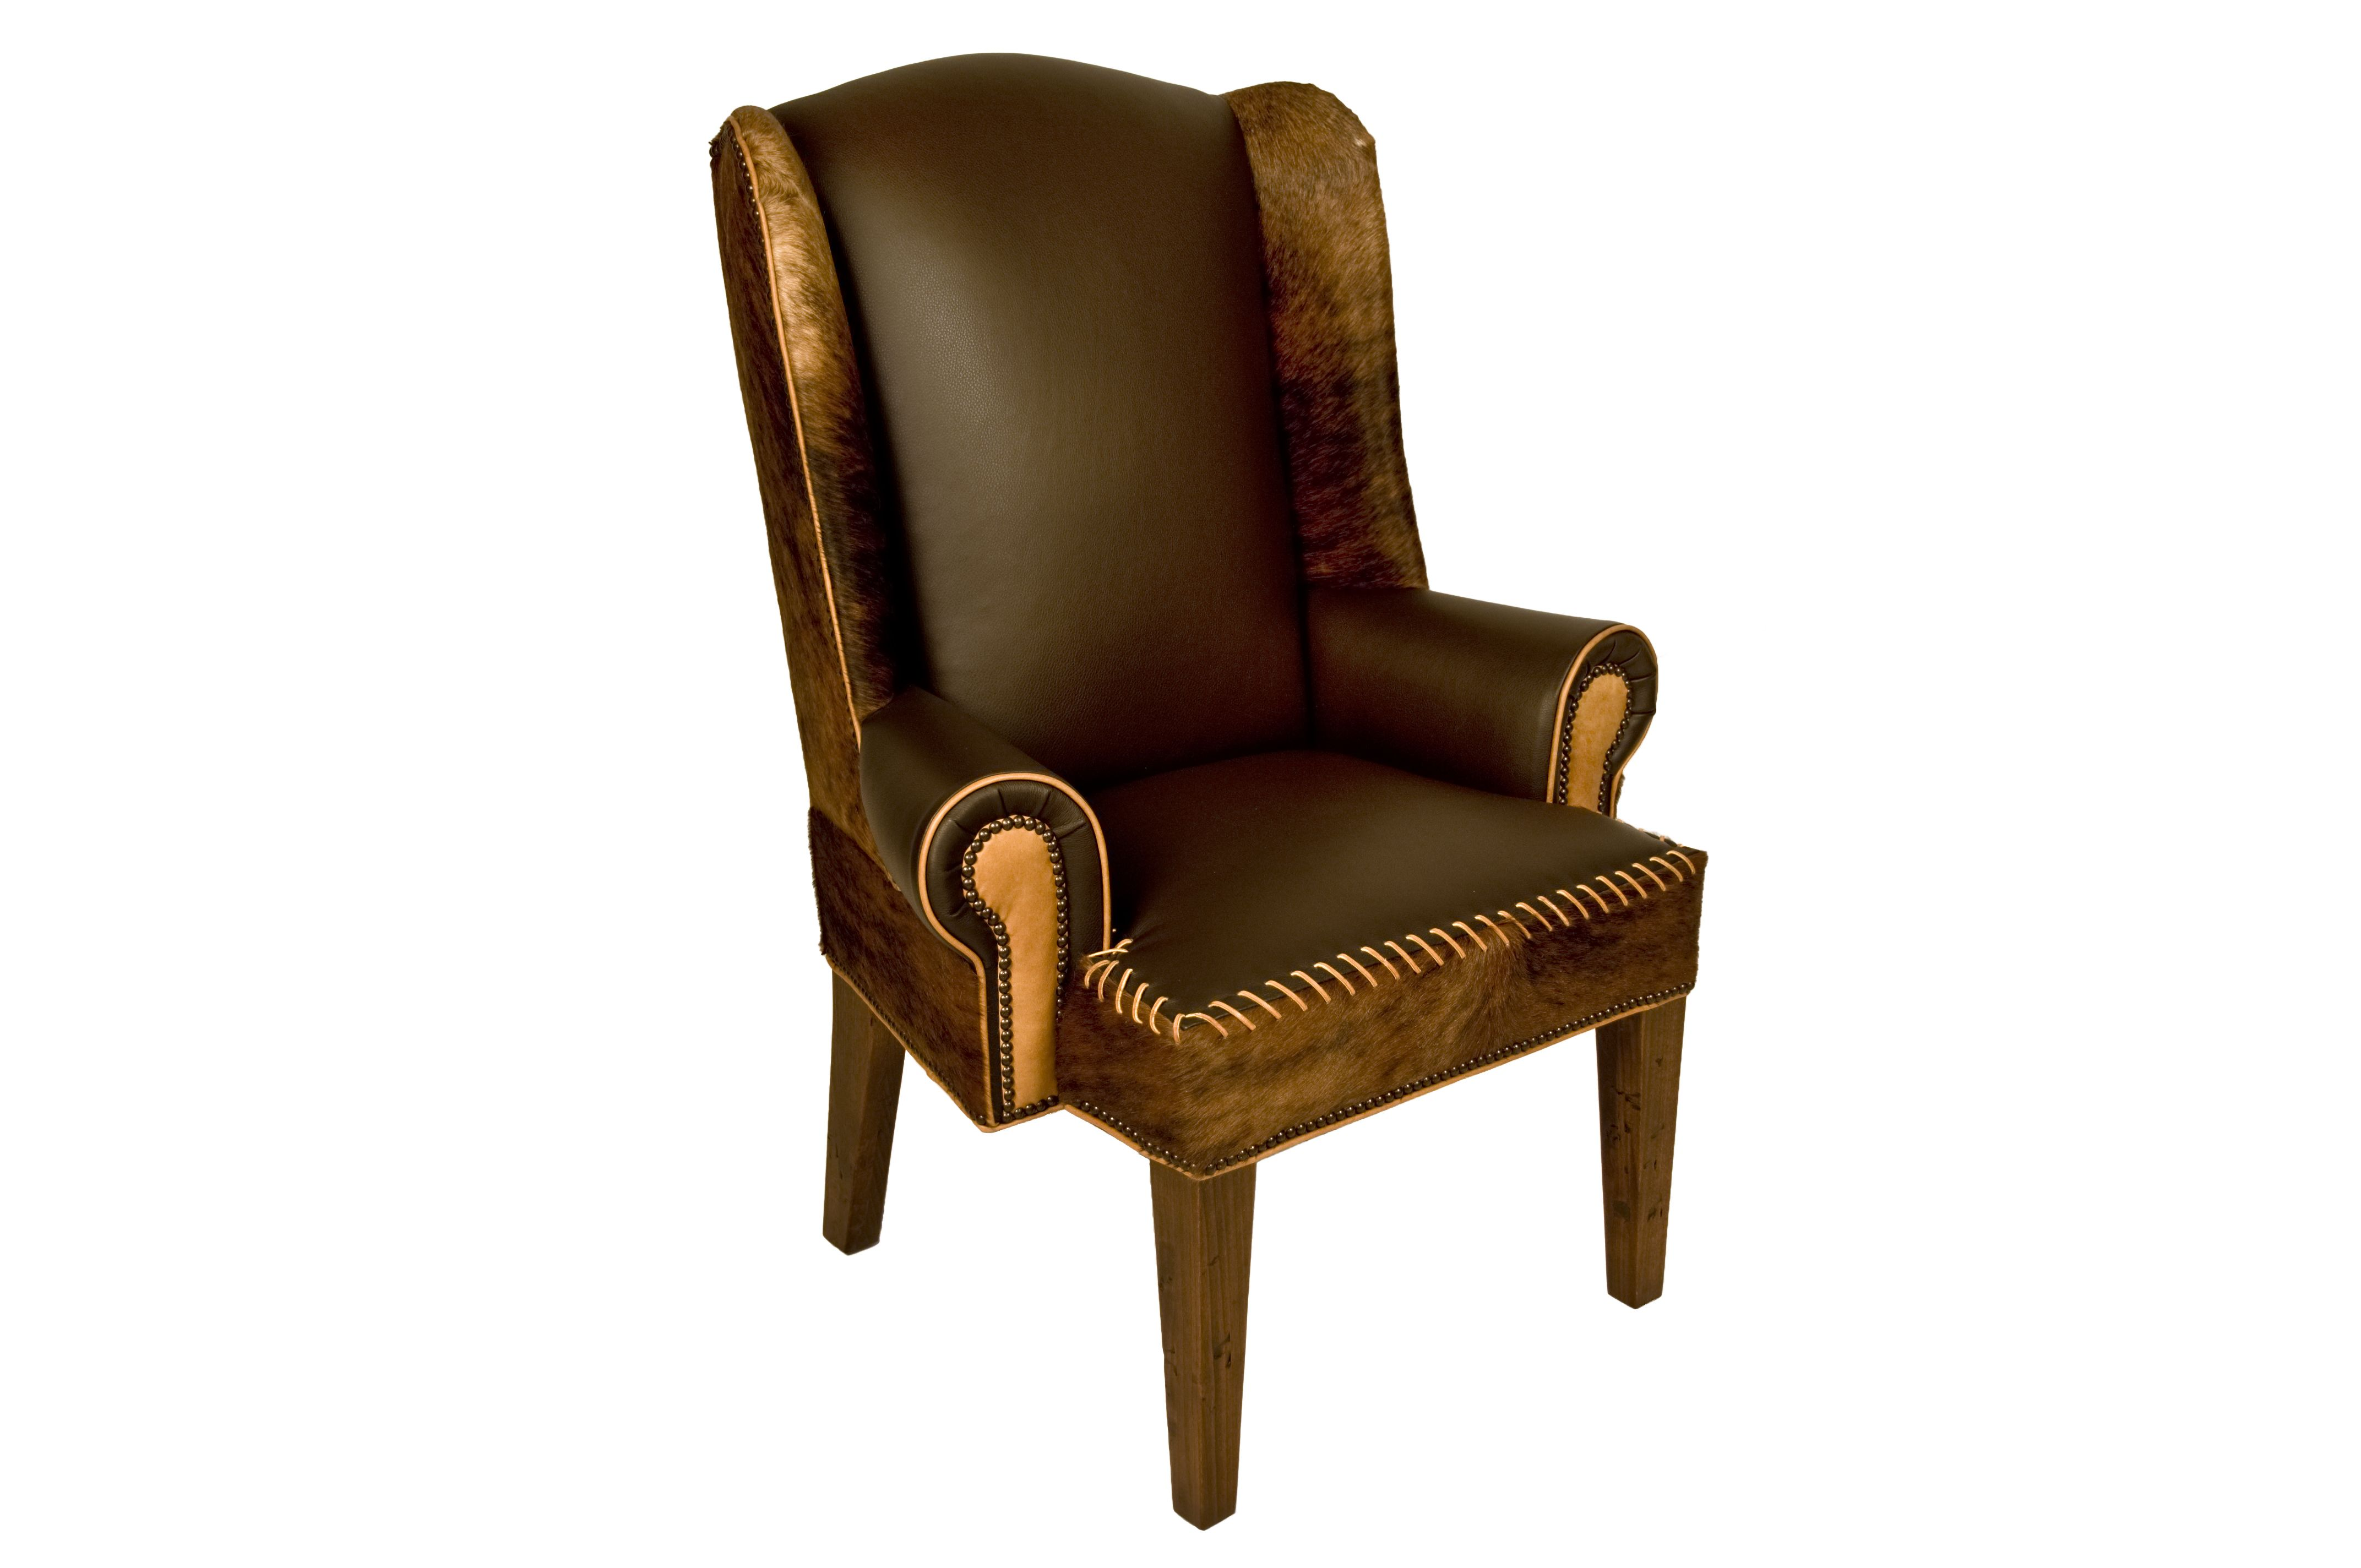 wing back dining chair. Cheyenne Wing Back Chair With Arms Dining M